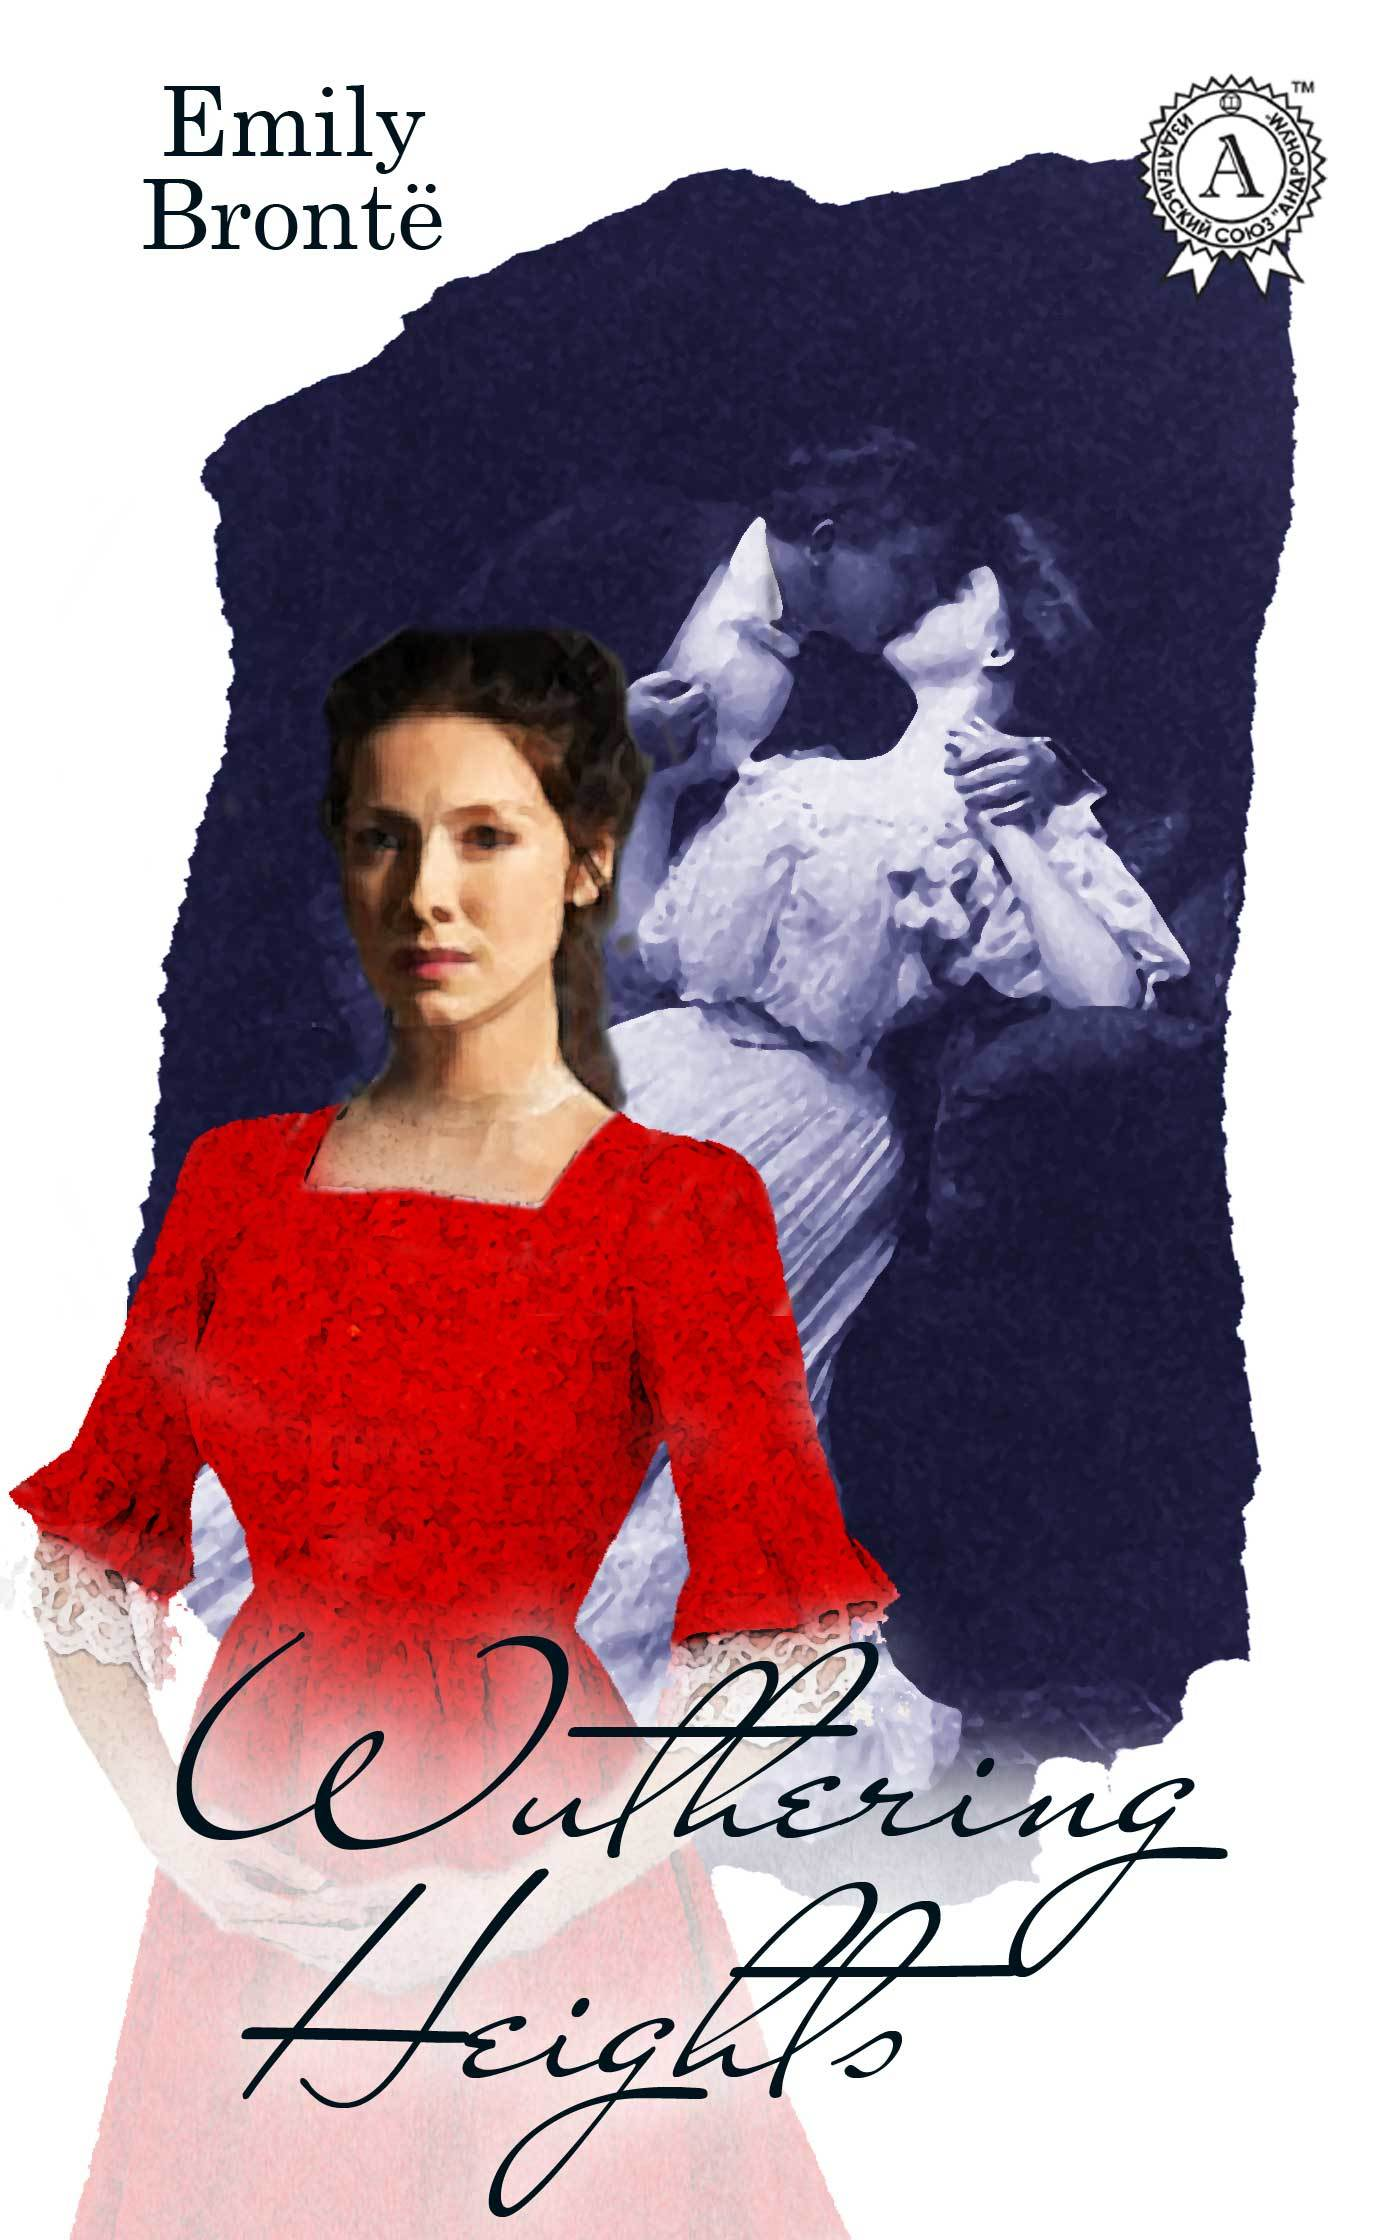 the influence of society in wuthering heights by emily bronte Bronte's treatment of education and social class structure in wuthering heights all clearly reflect the influence of the victorian era in which bronte wrote the novel hindley's abuse of.